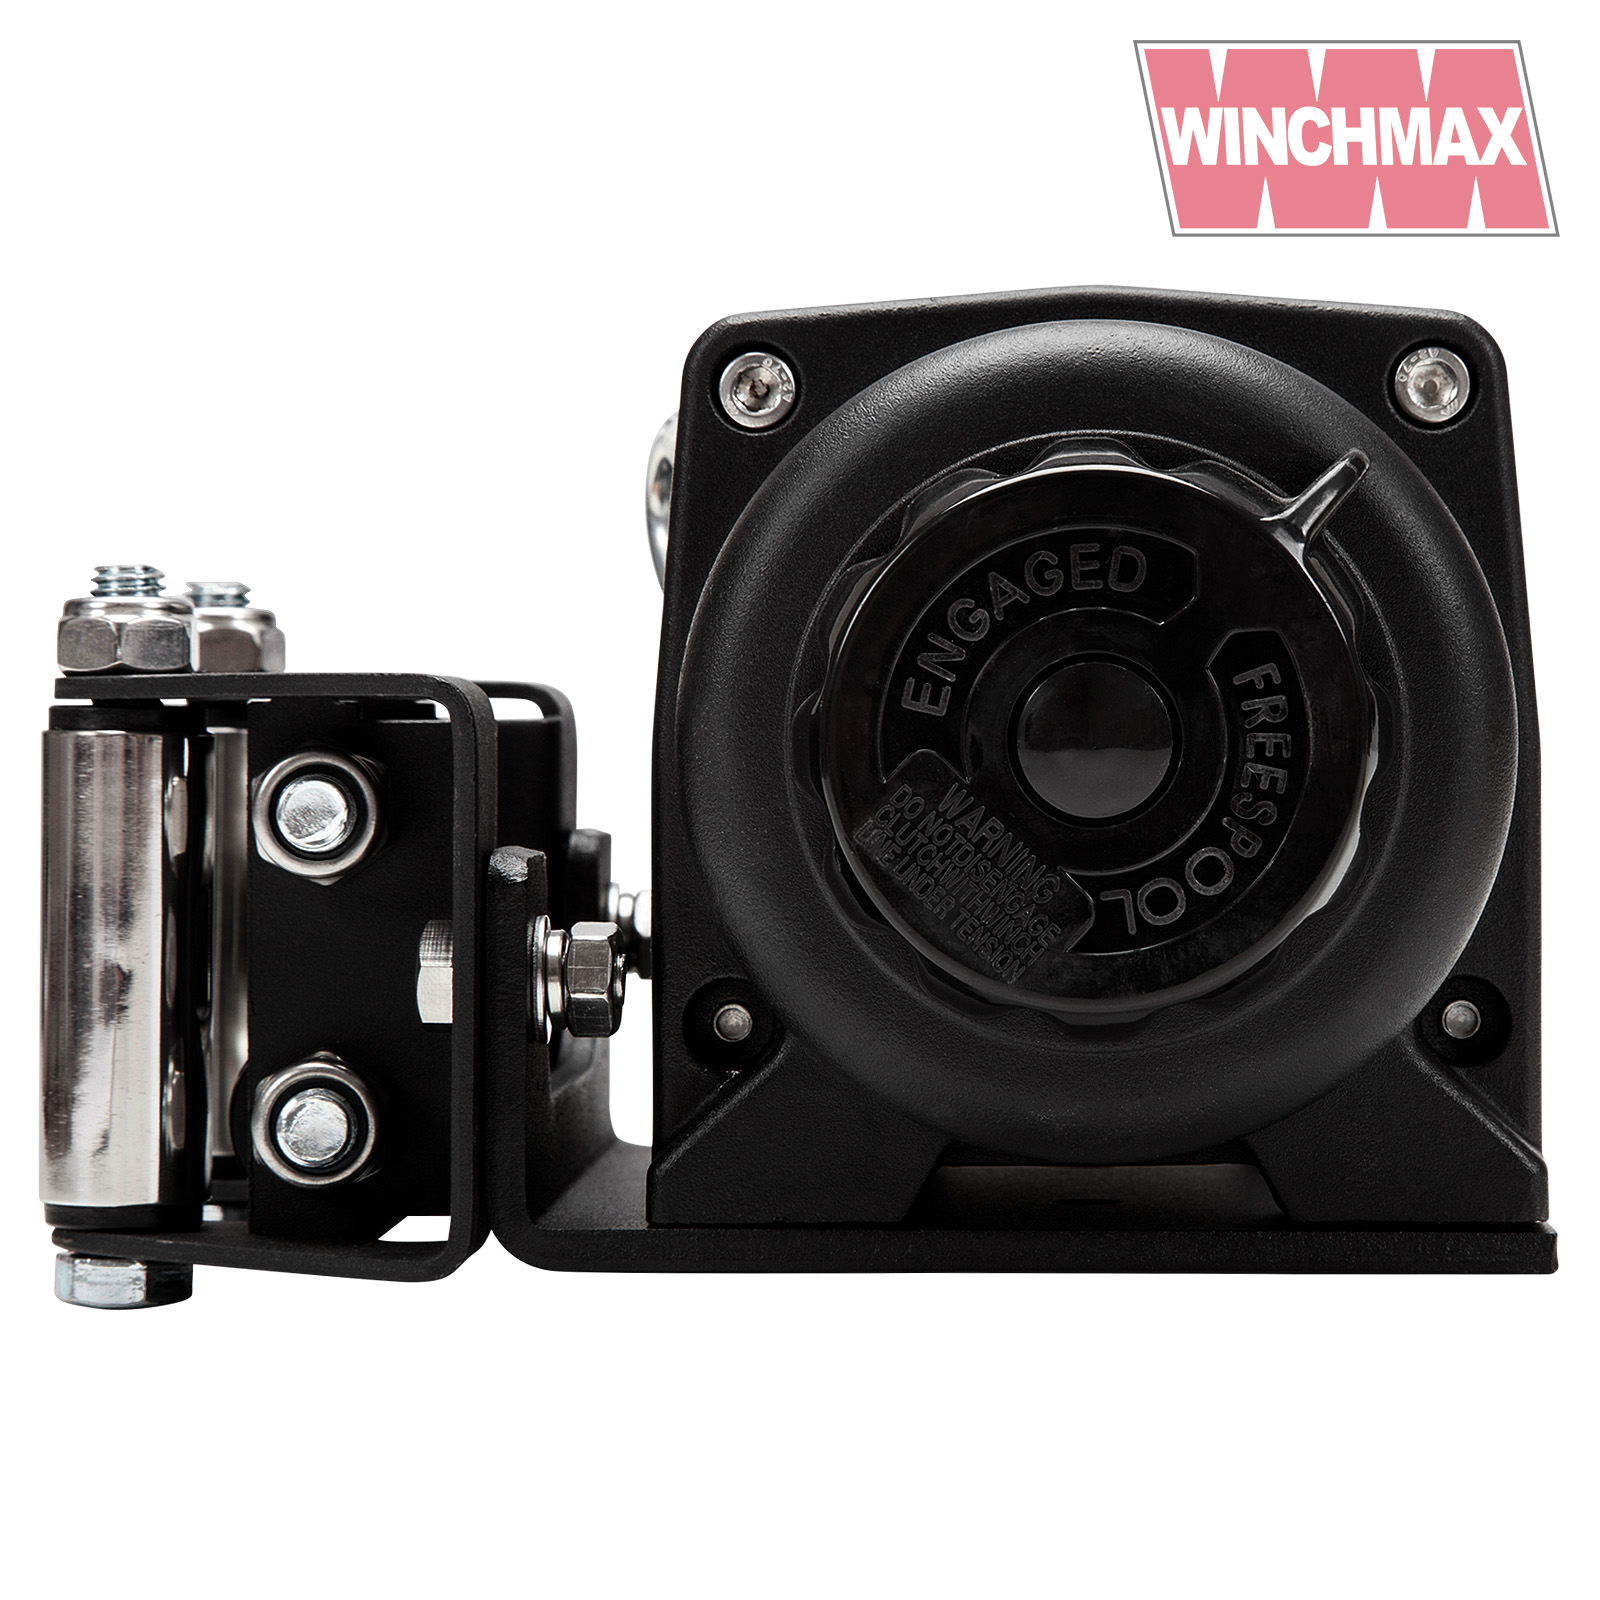 Winch 12v Mil Spec Atv Boat Trailer 3000 Lb Winchmax Stainless Wiring Instructions Steel Marine